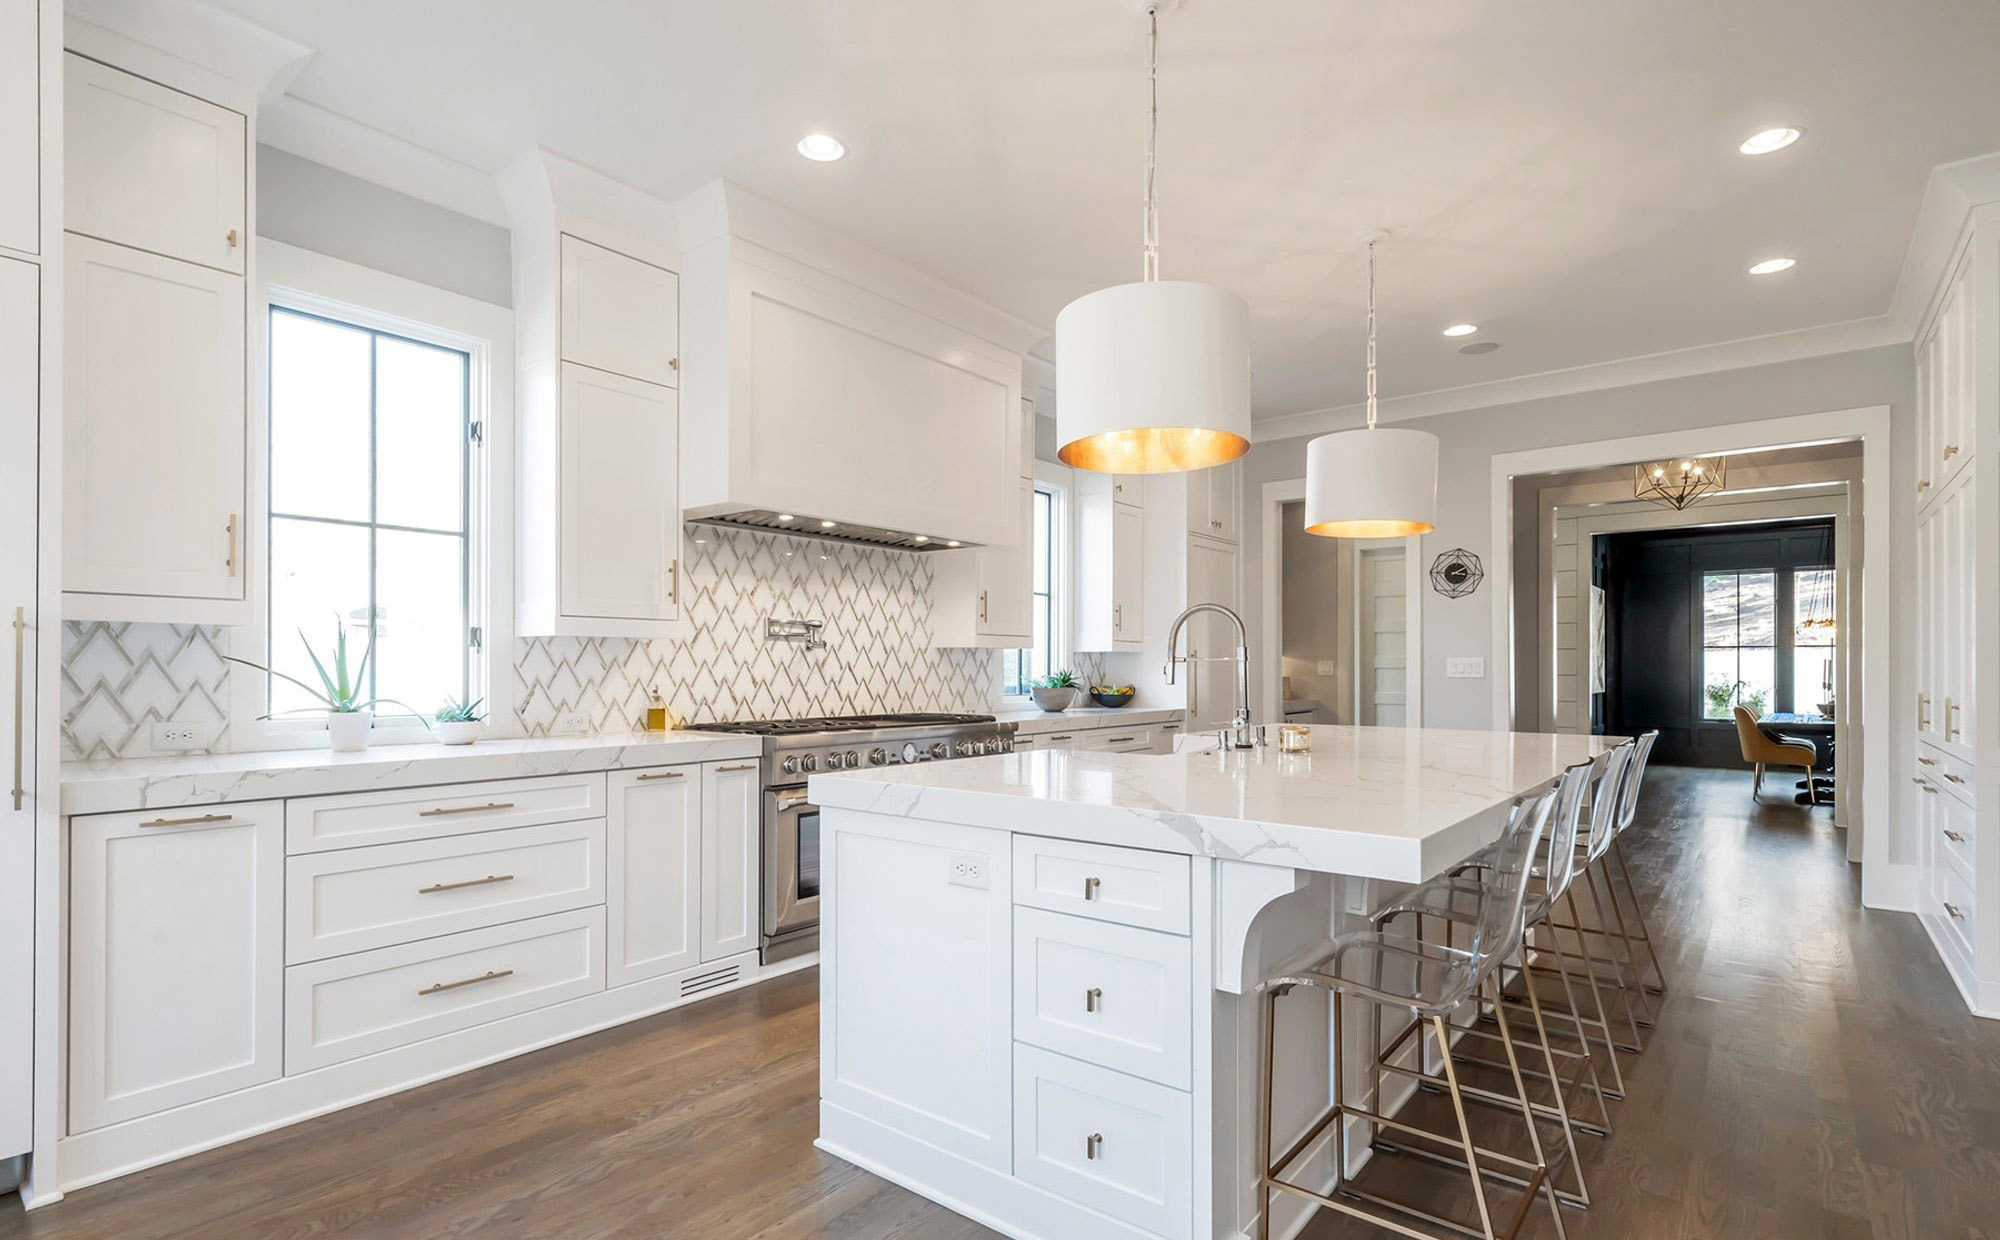 Beautiful white kitchen featuring a large island with seating, a farmhouse sink,storage and lots of seating.